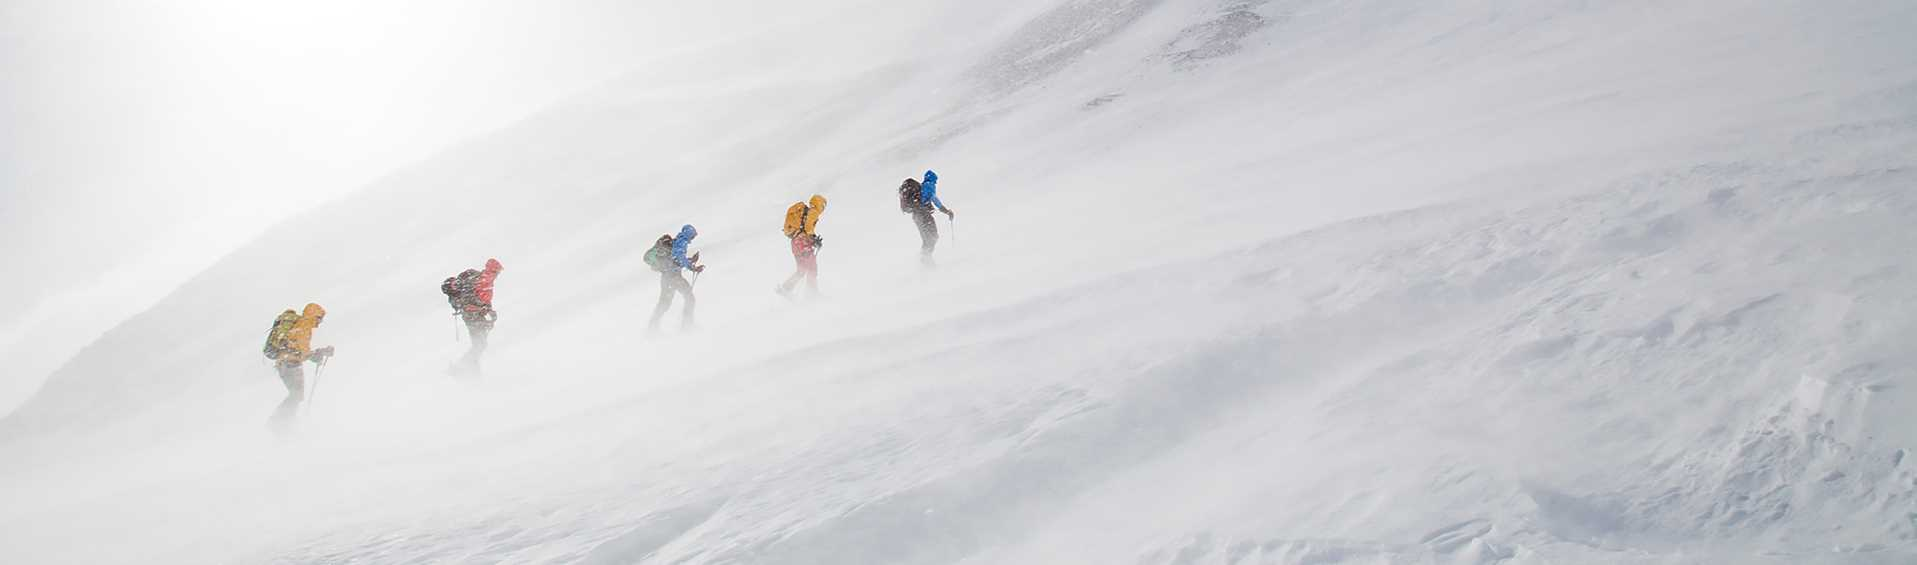 A group of cross country skiers travelling through a snowstorm